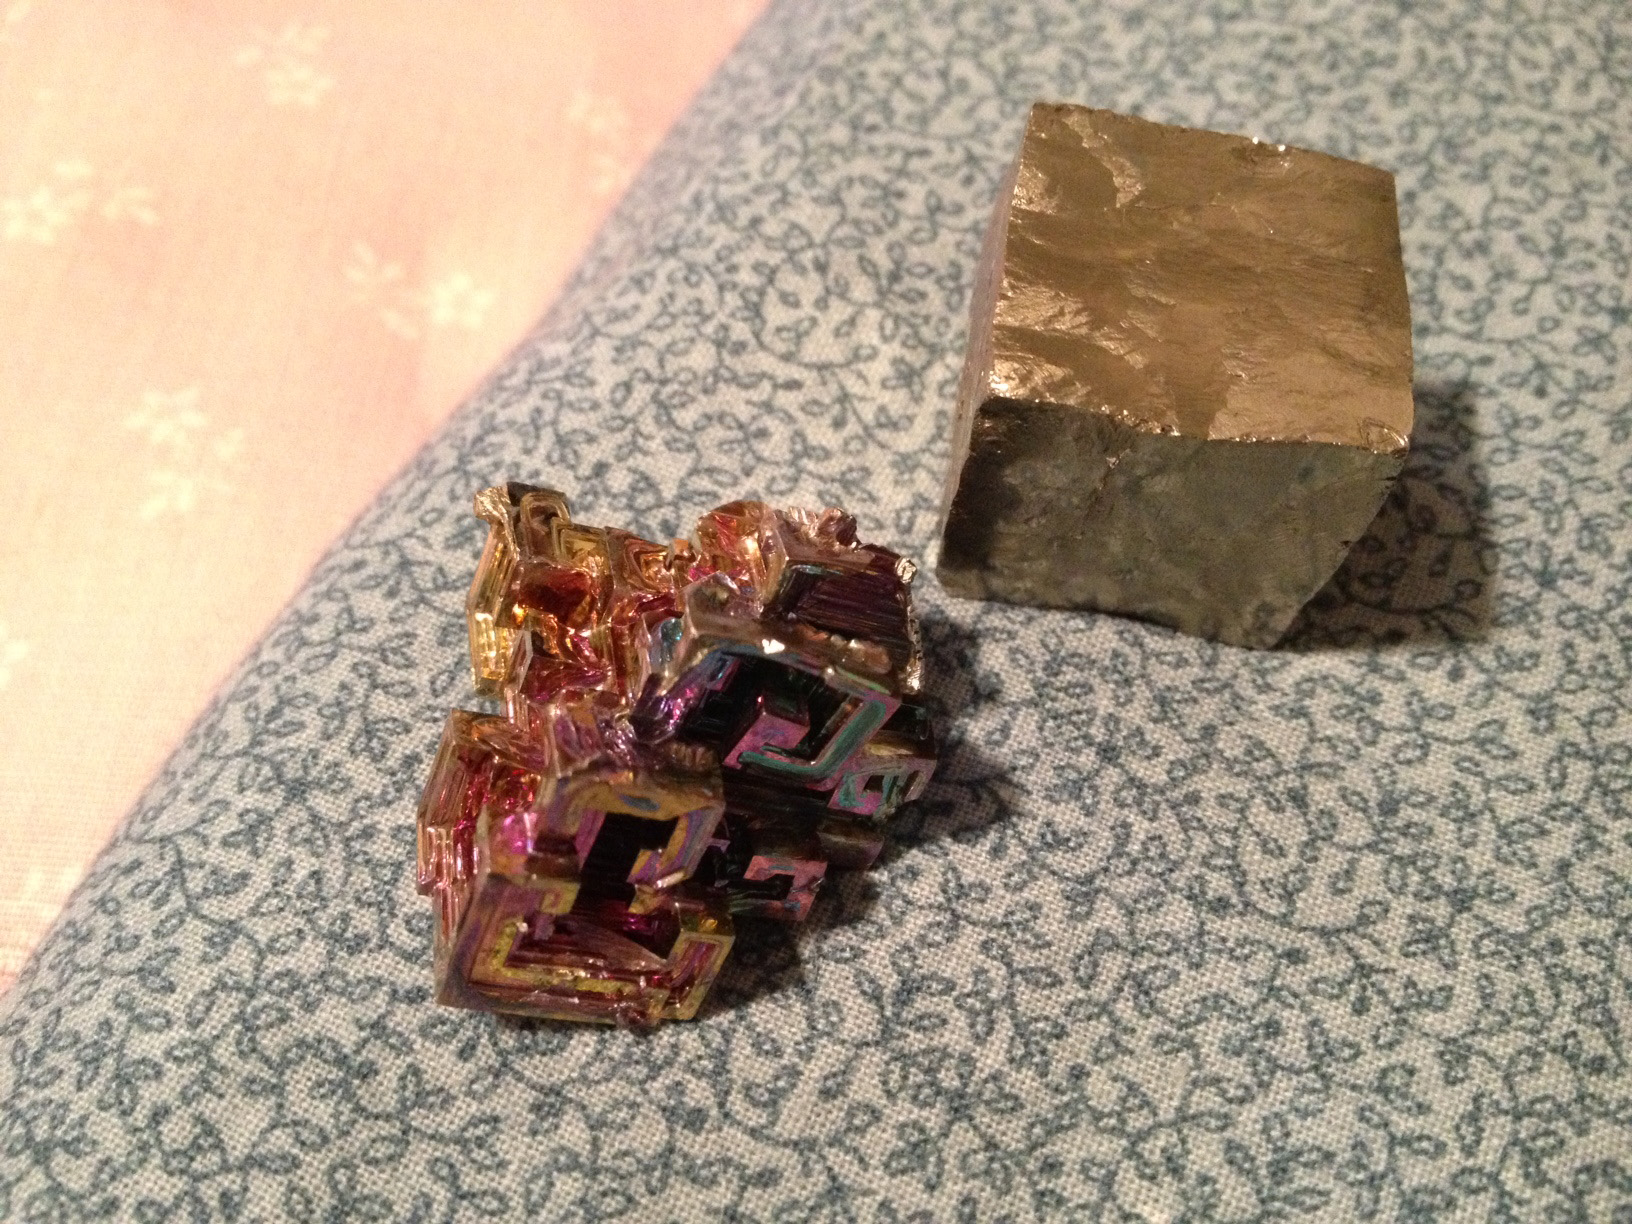 The Bismuth is so shiny and iridescent! Hard to capture in a photo.